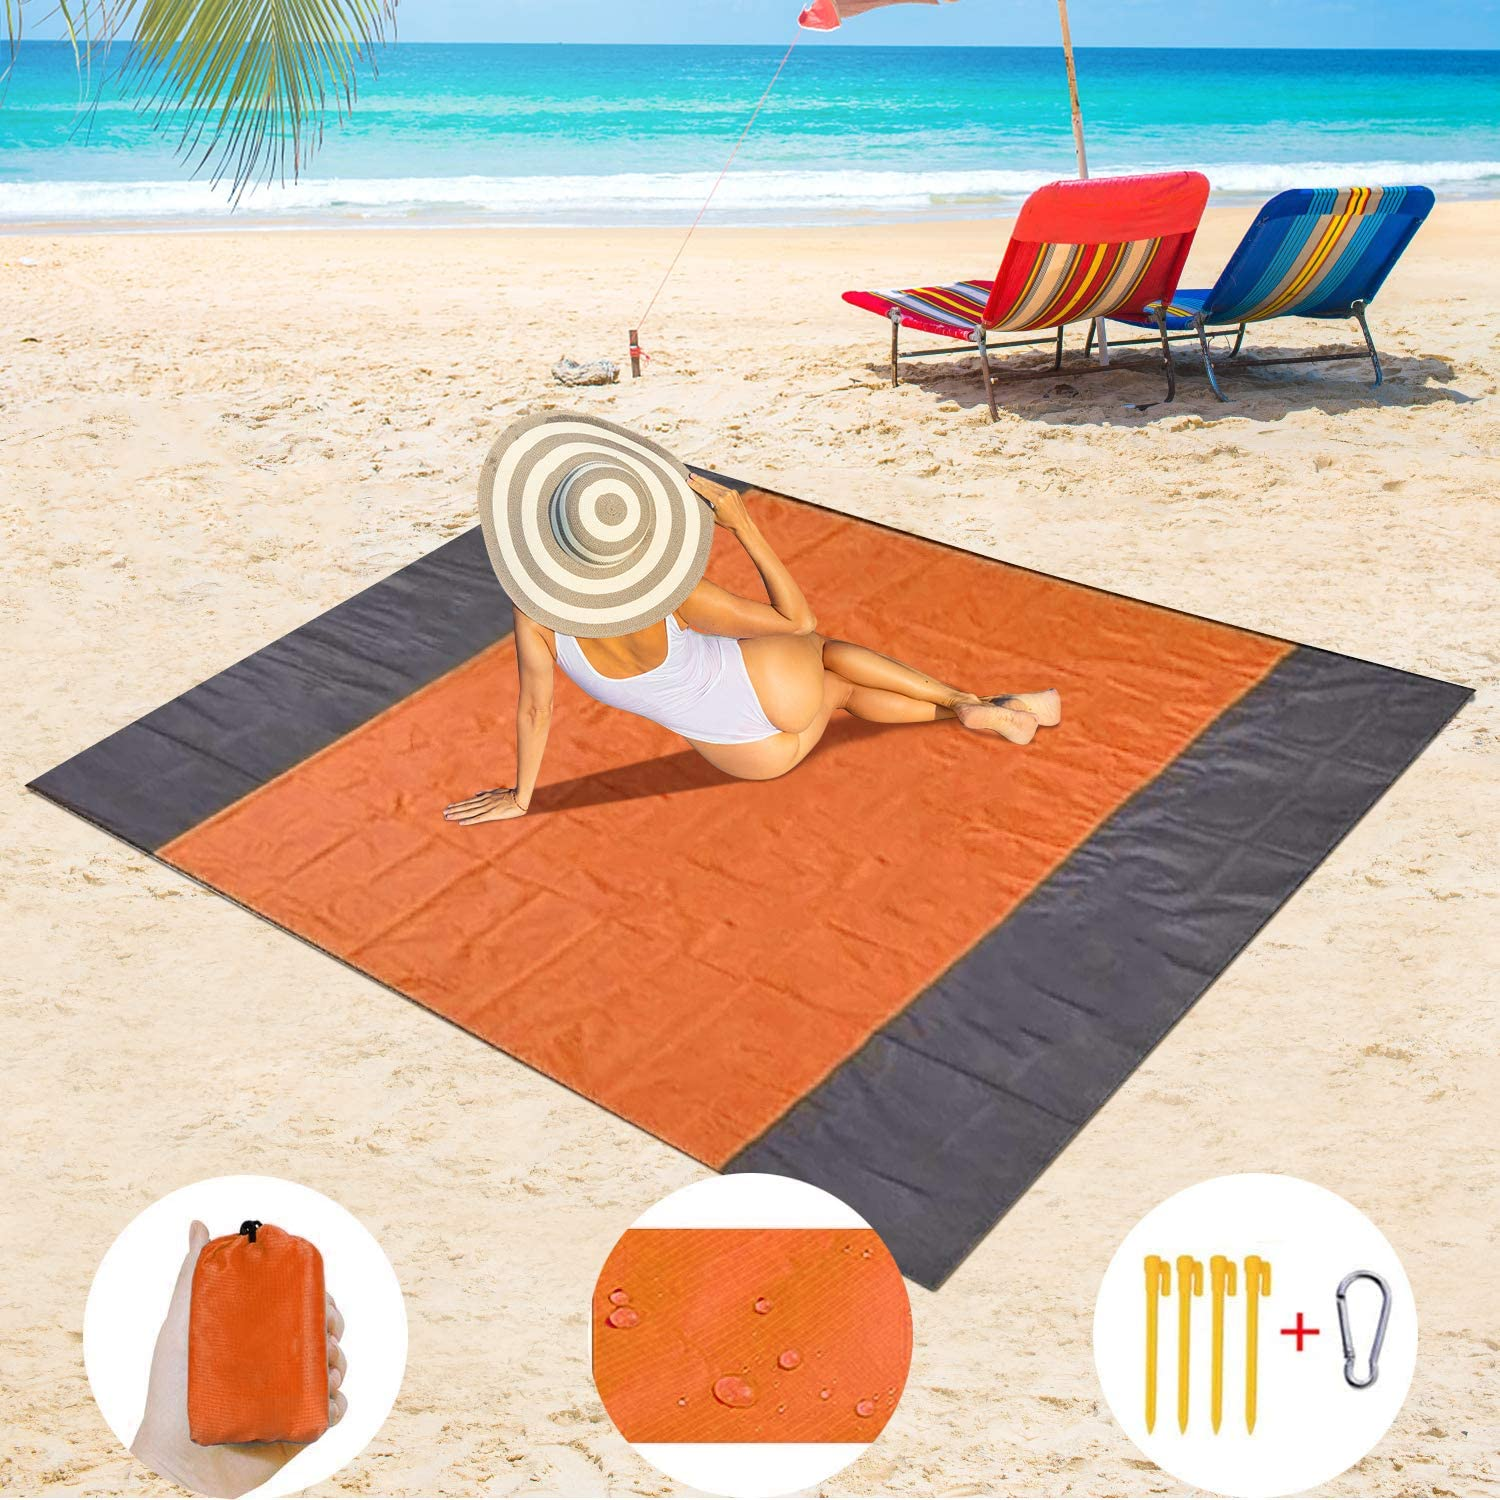 Beach Blanket, 79''×83'' Beach Blanket Waterproof Sand Control for 3-7 Adults, Extra Large Lightweight Beach mat, Portable Picnic Blanket, Travel, Camping Package Sand-Proof mat for Hiking